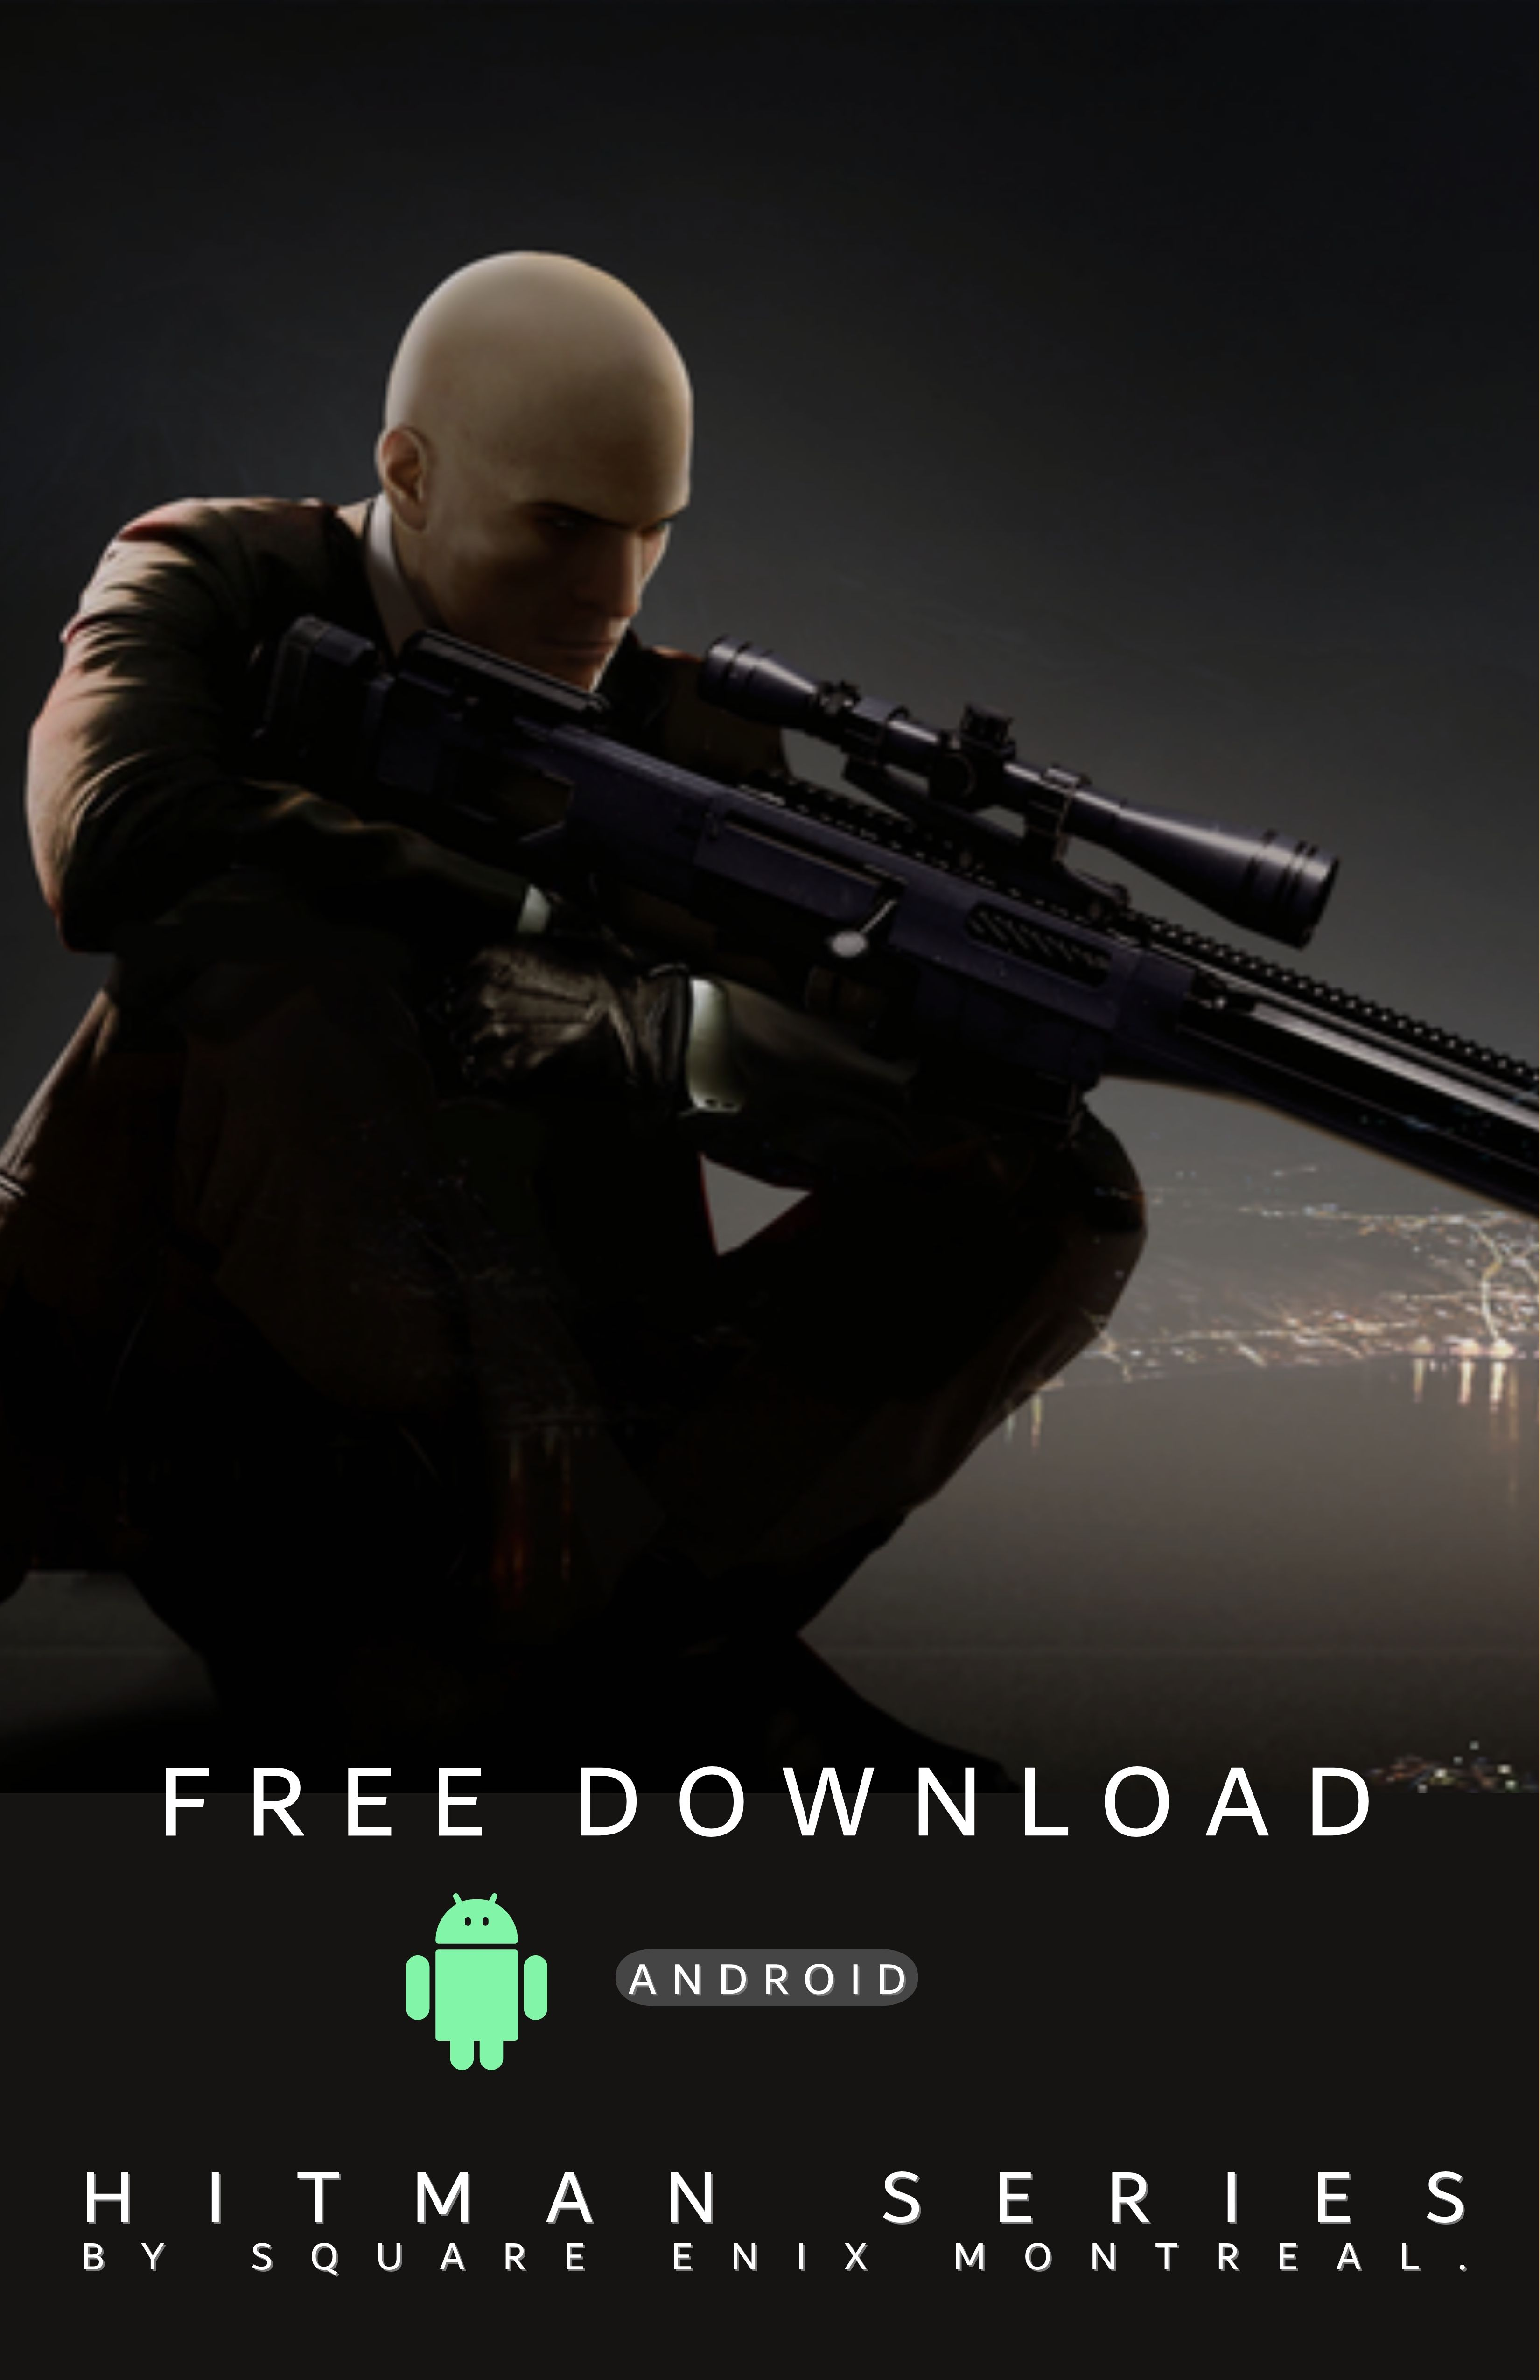 hitman 2 sniper assassin 4k Easy Download with Direct link